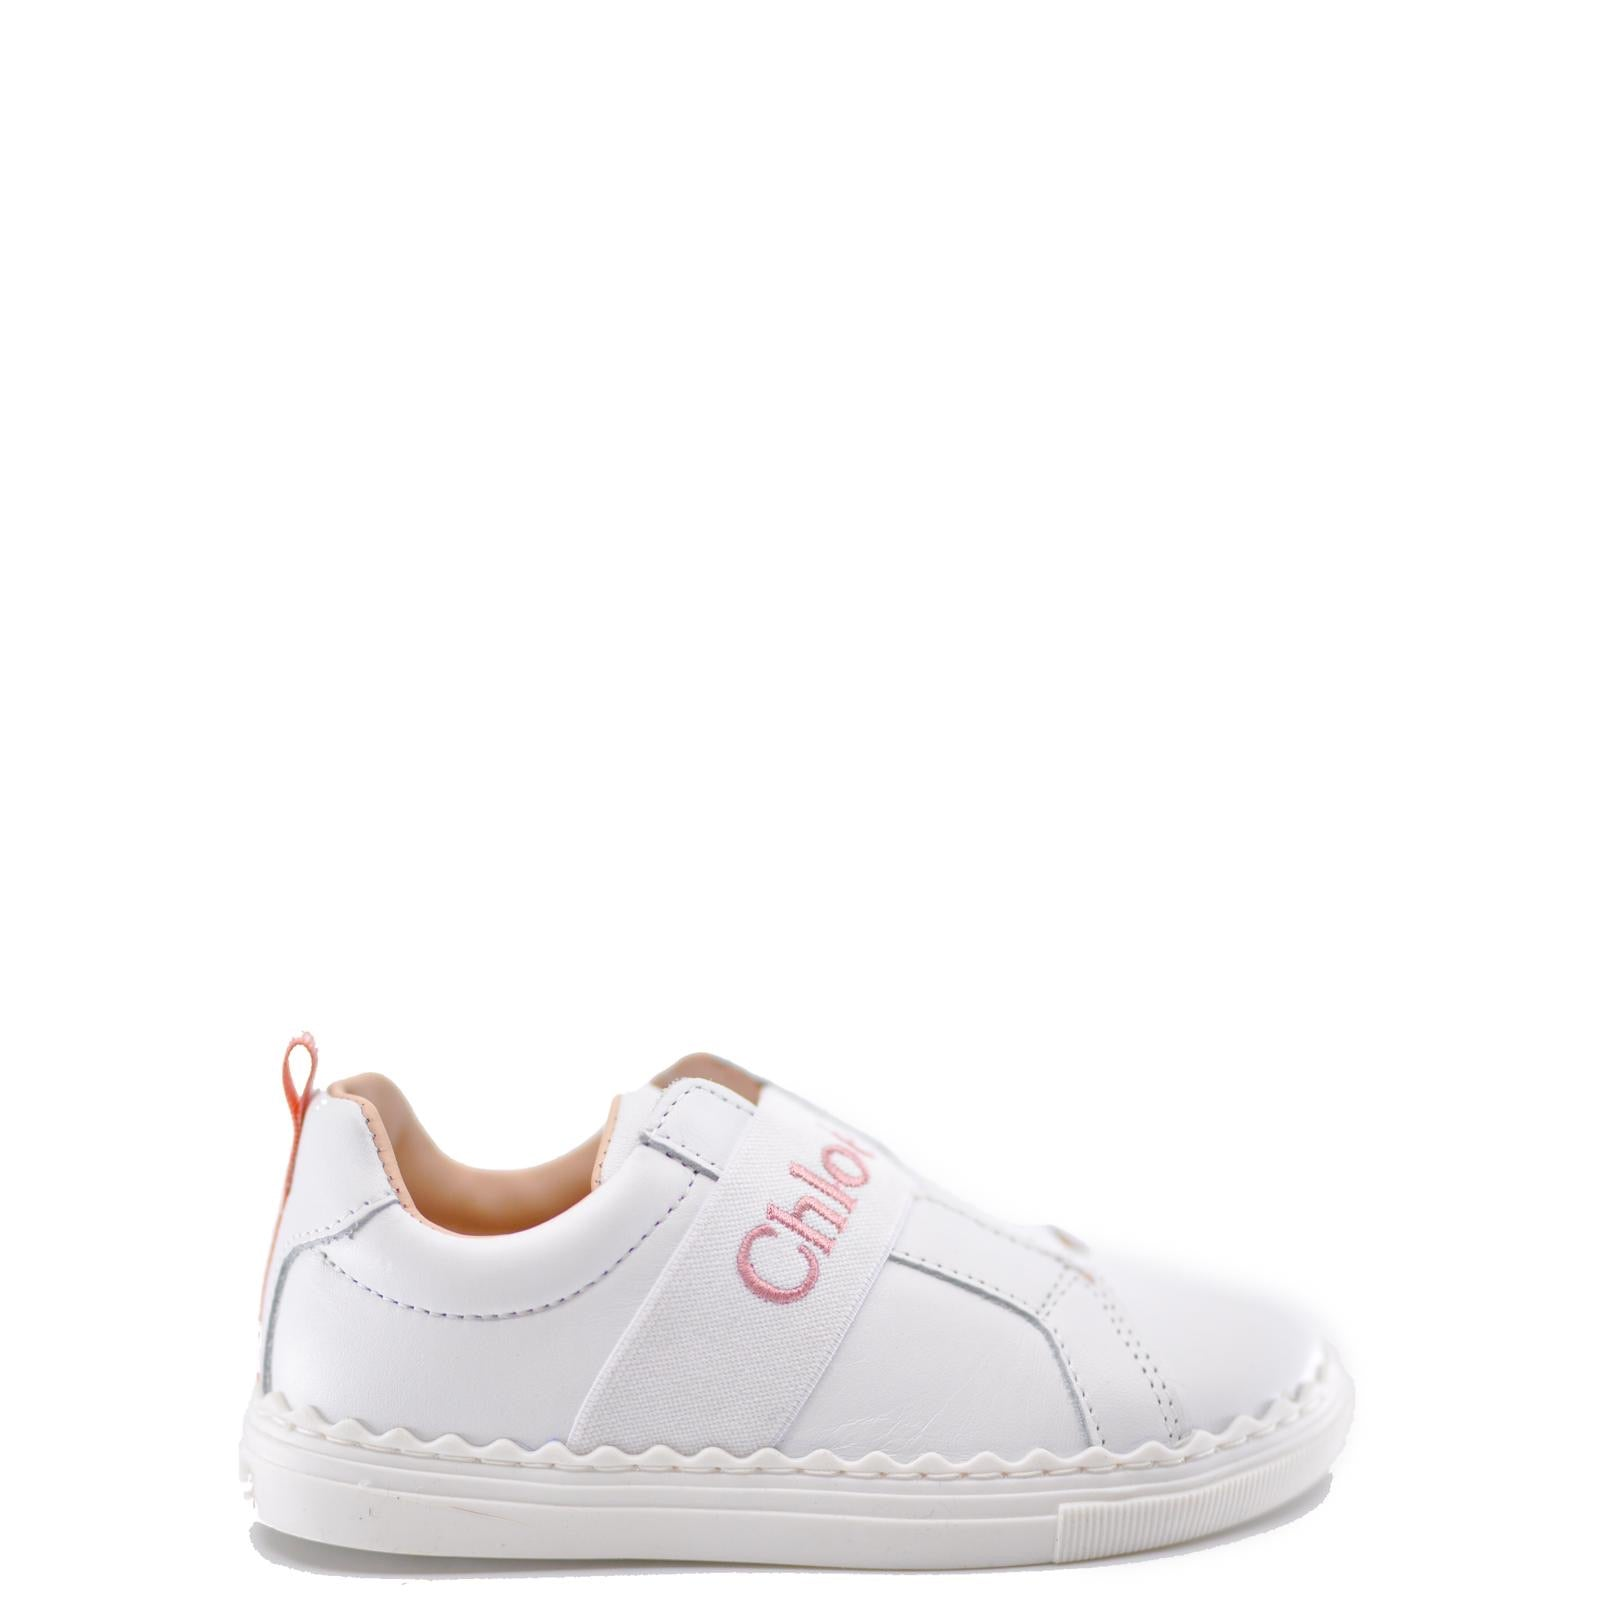 Chloe Elastic Logo Sneaker-Tassel Children Shoes